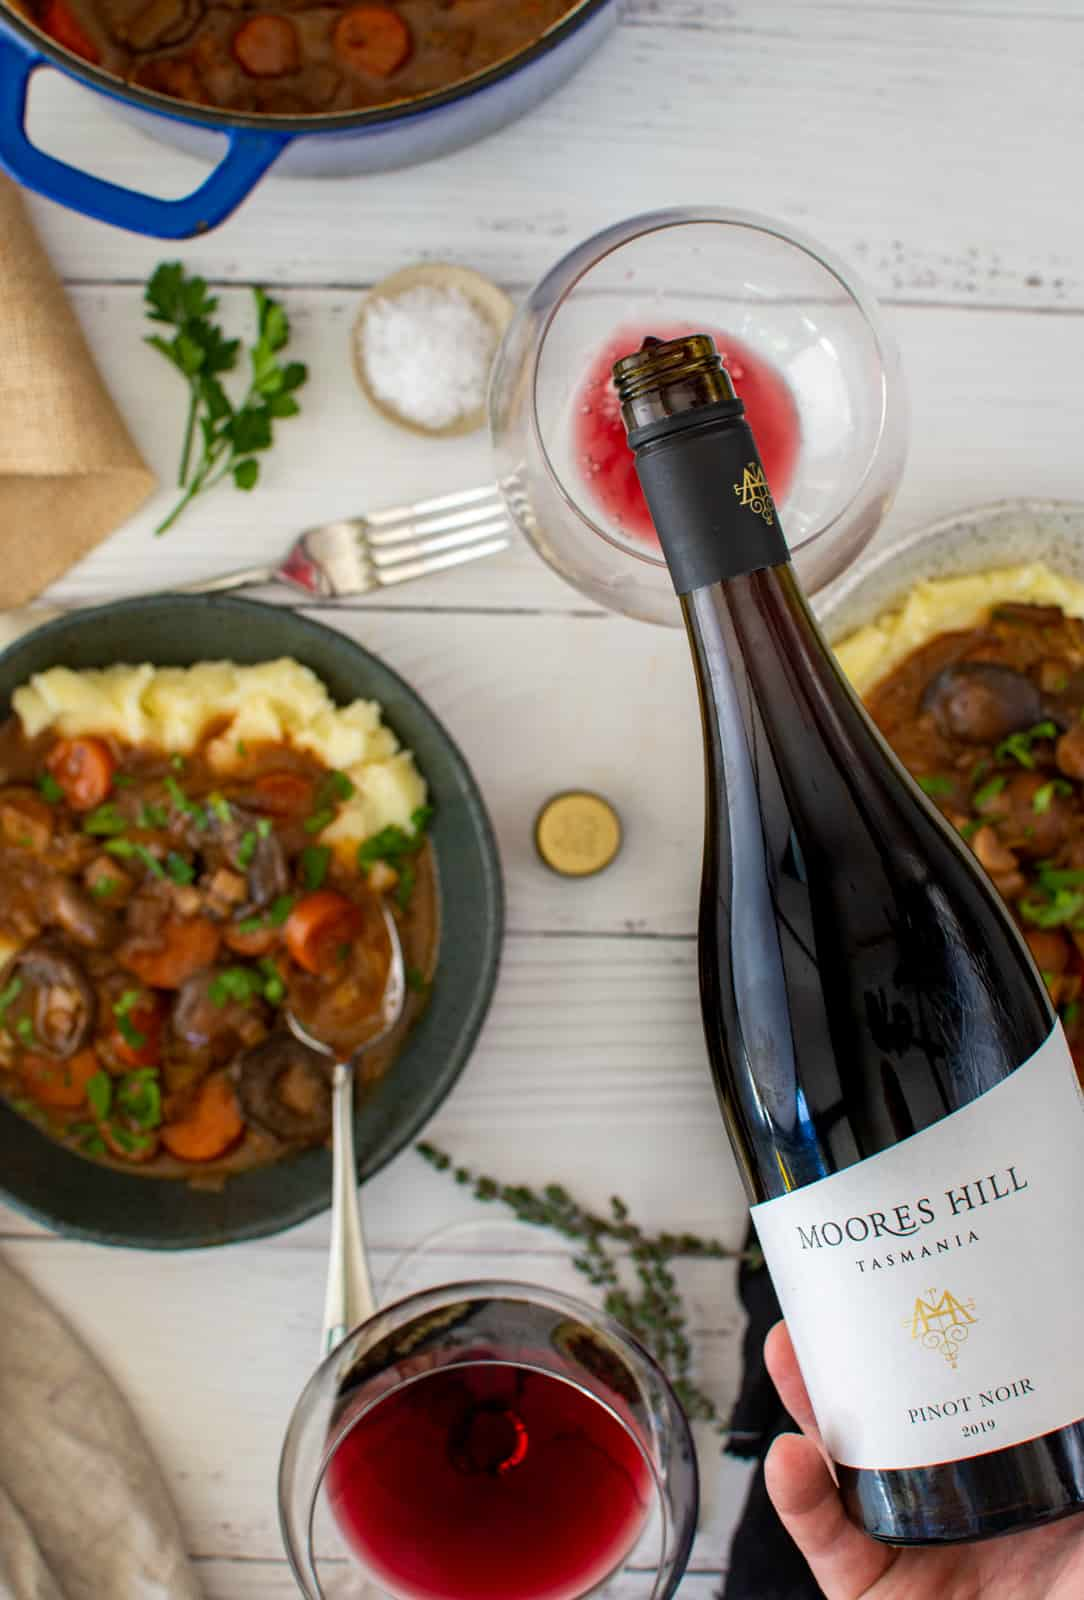 moores hill pinot noir being poured, bowls of stew on a white table beneath